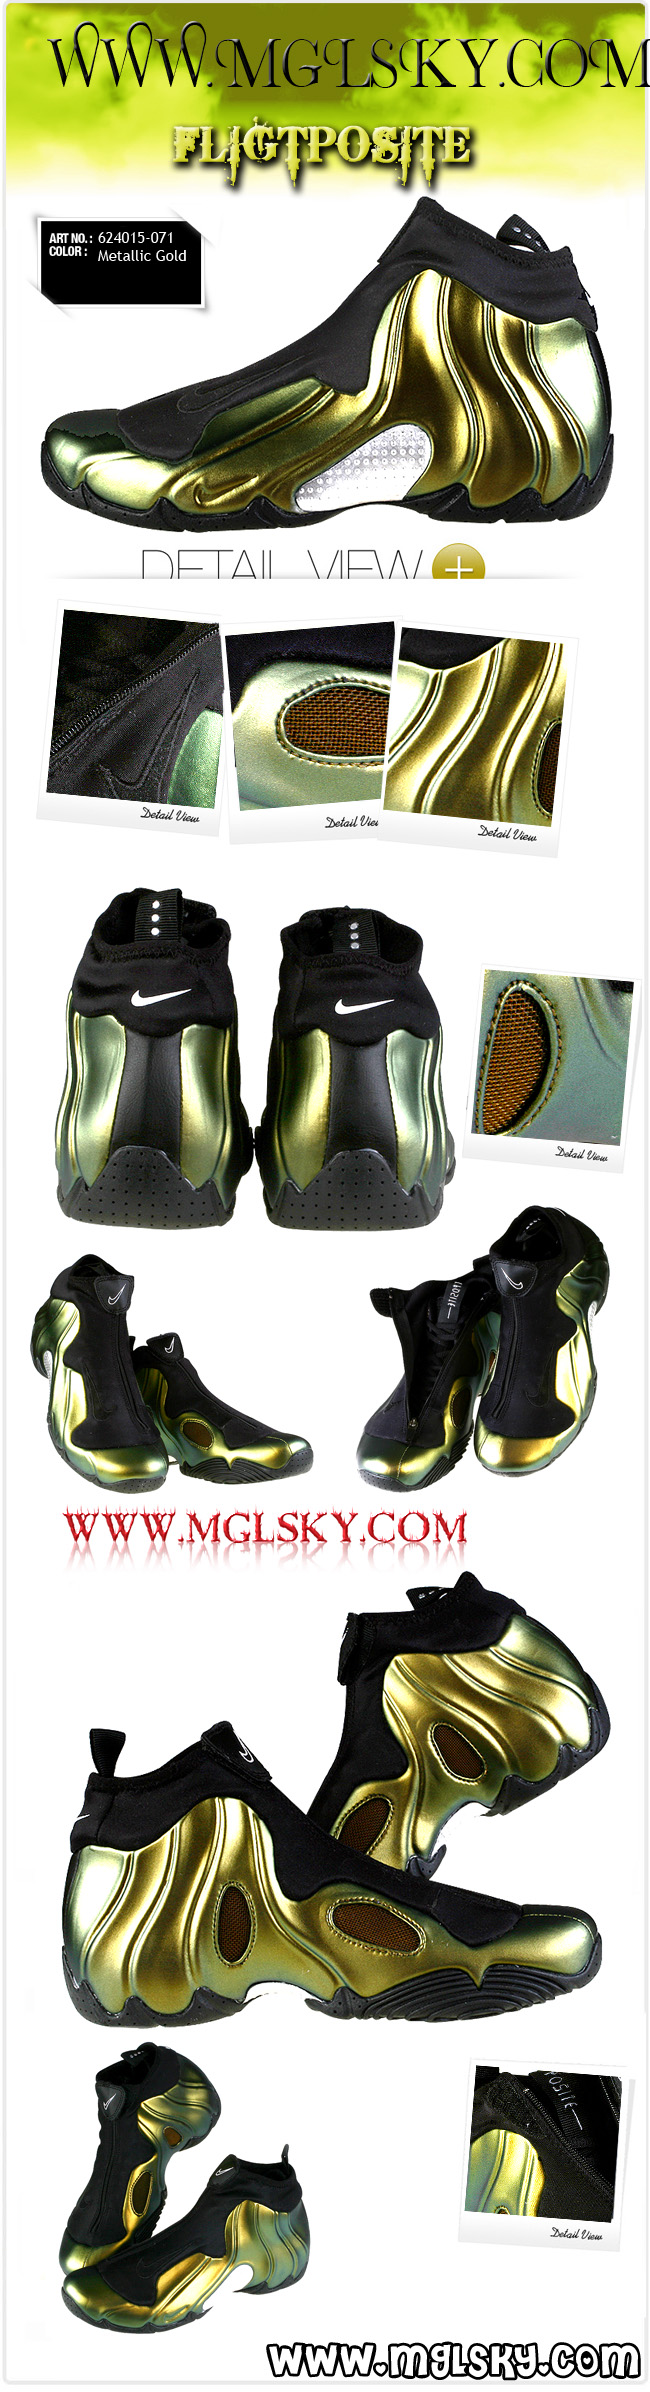 flightposite metallic gold.jpg